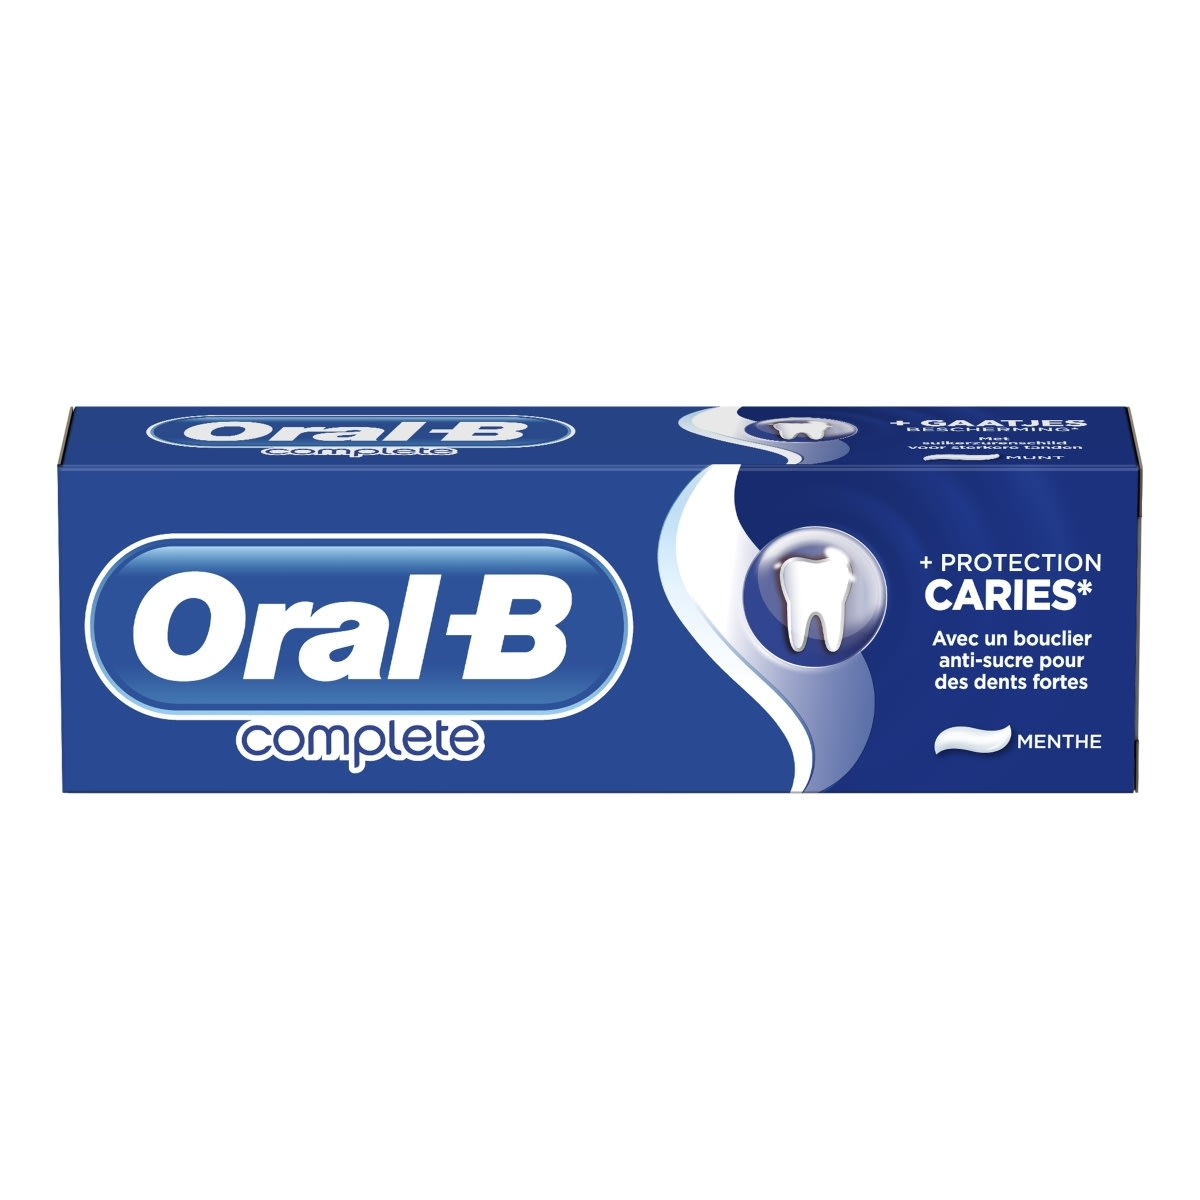 Le dentifrice protection caries Oral-B Complete Plus